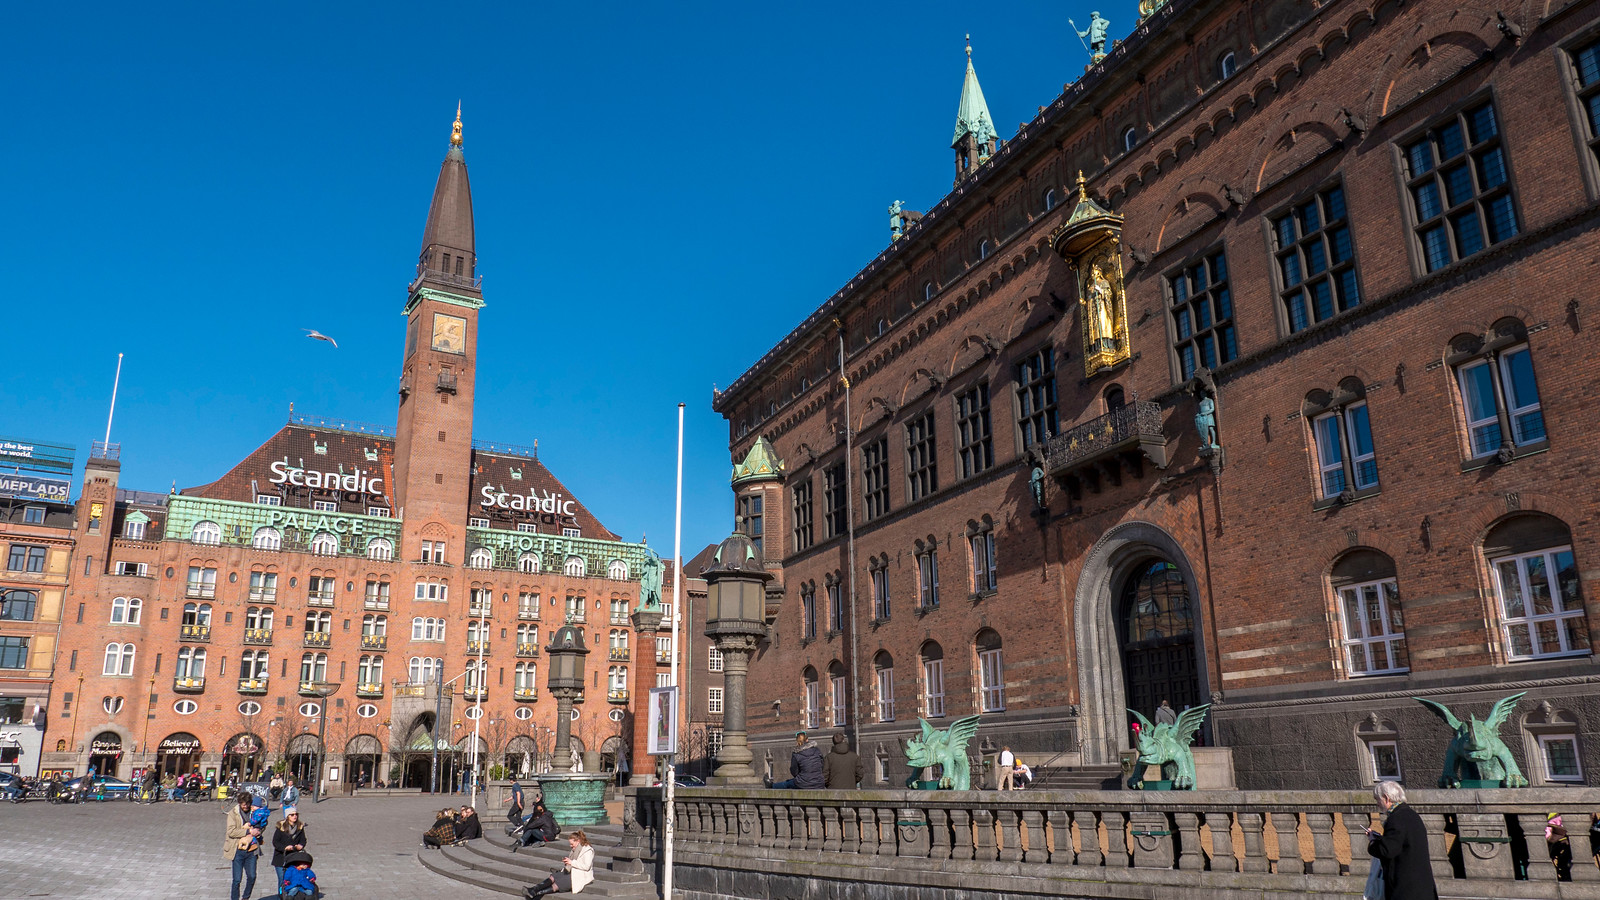 Copenhagen City Hall and City Hall Square - Places to see in Copenhagen